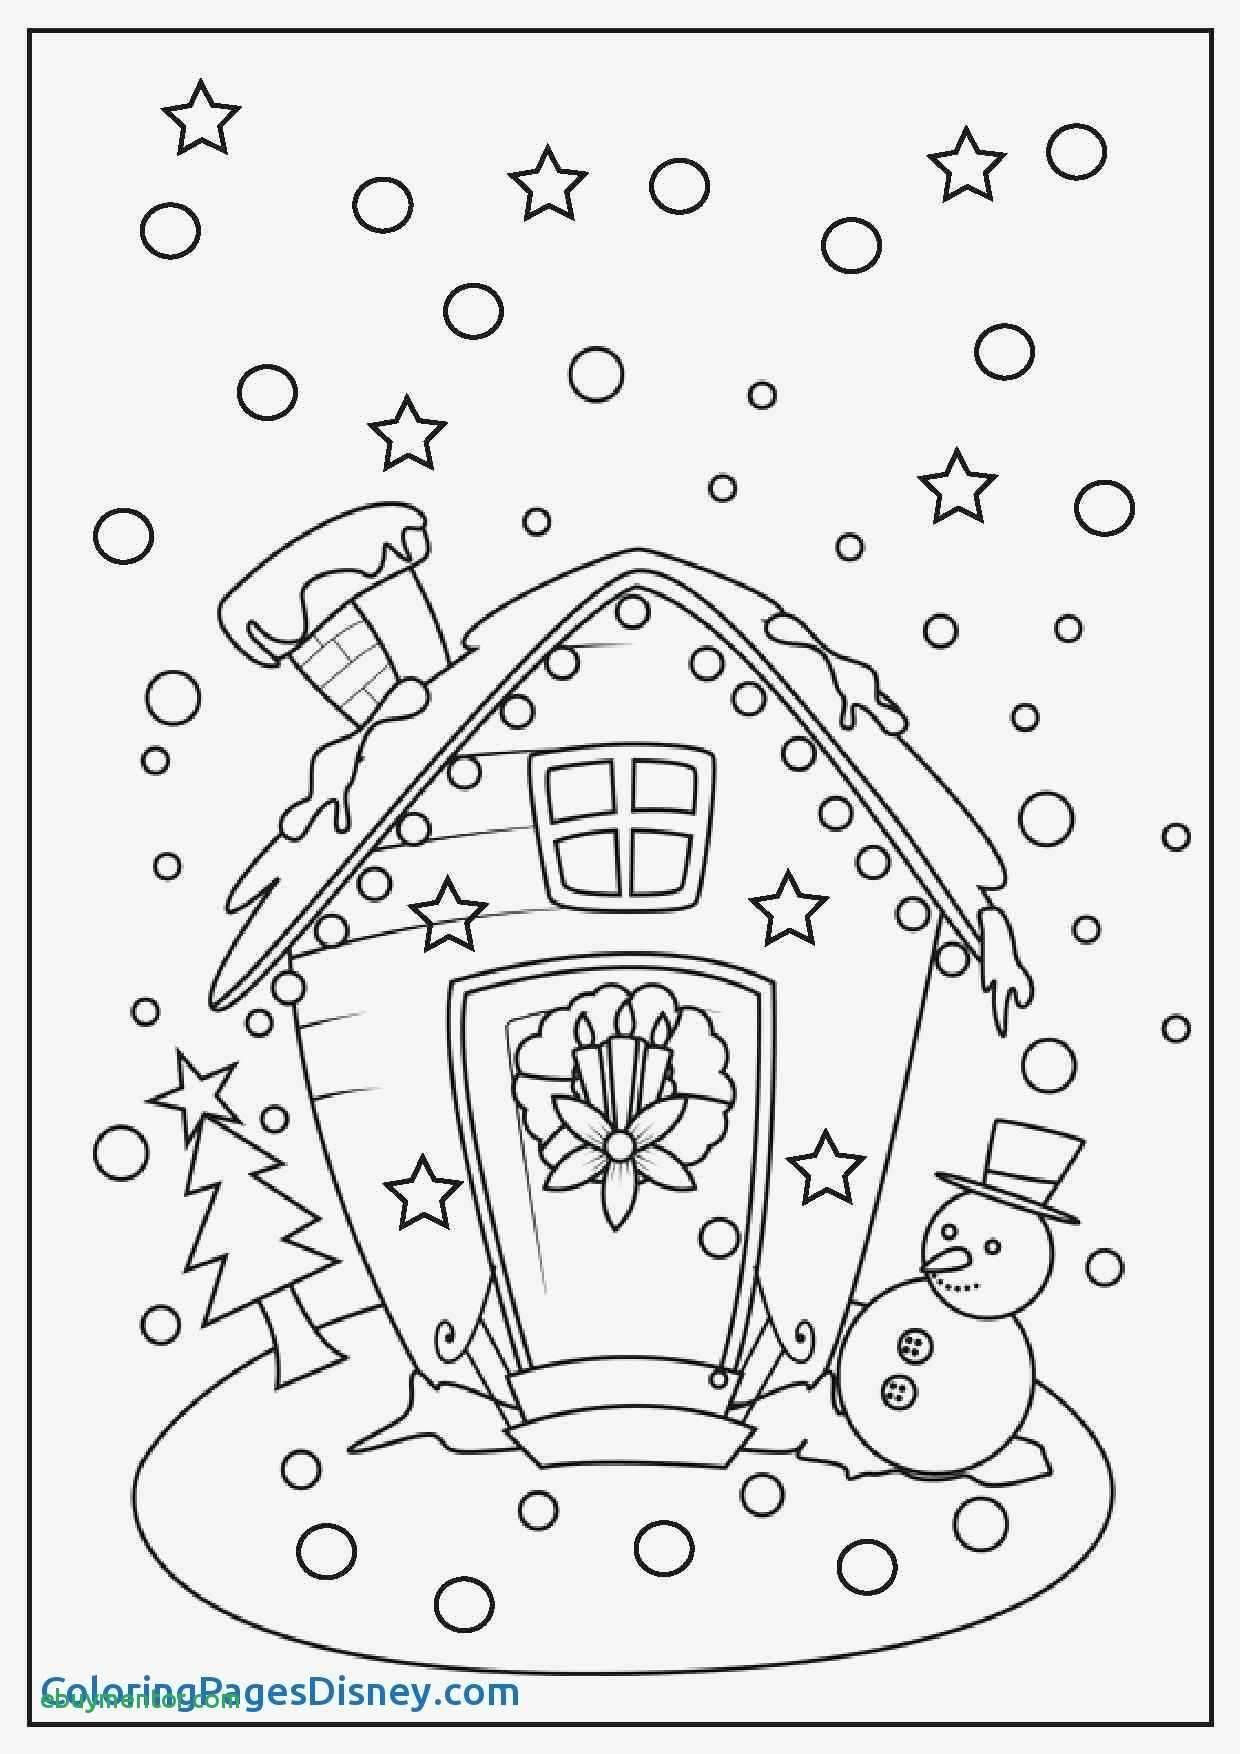 tree coloring pages Download-Christmas Tree Beautiful Christmas Tree Cut Out Coloring Pages Cool Coloring Printables 0d 12-k